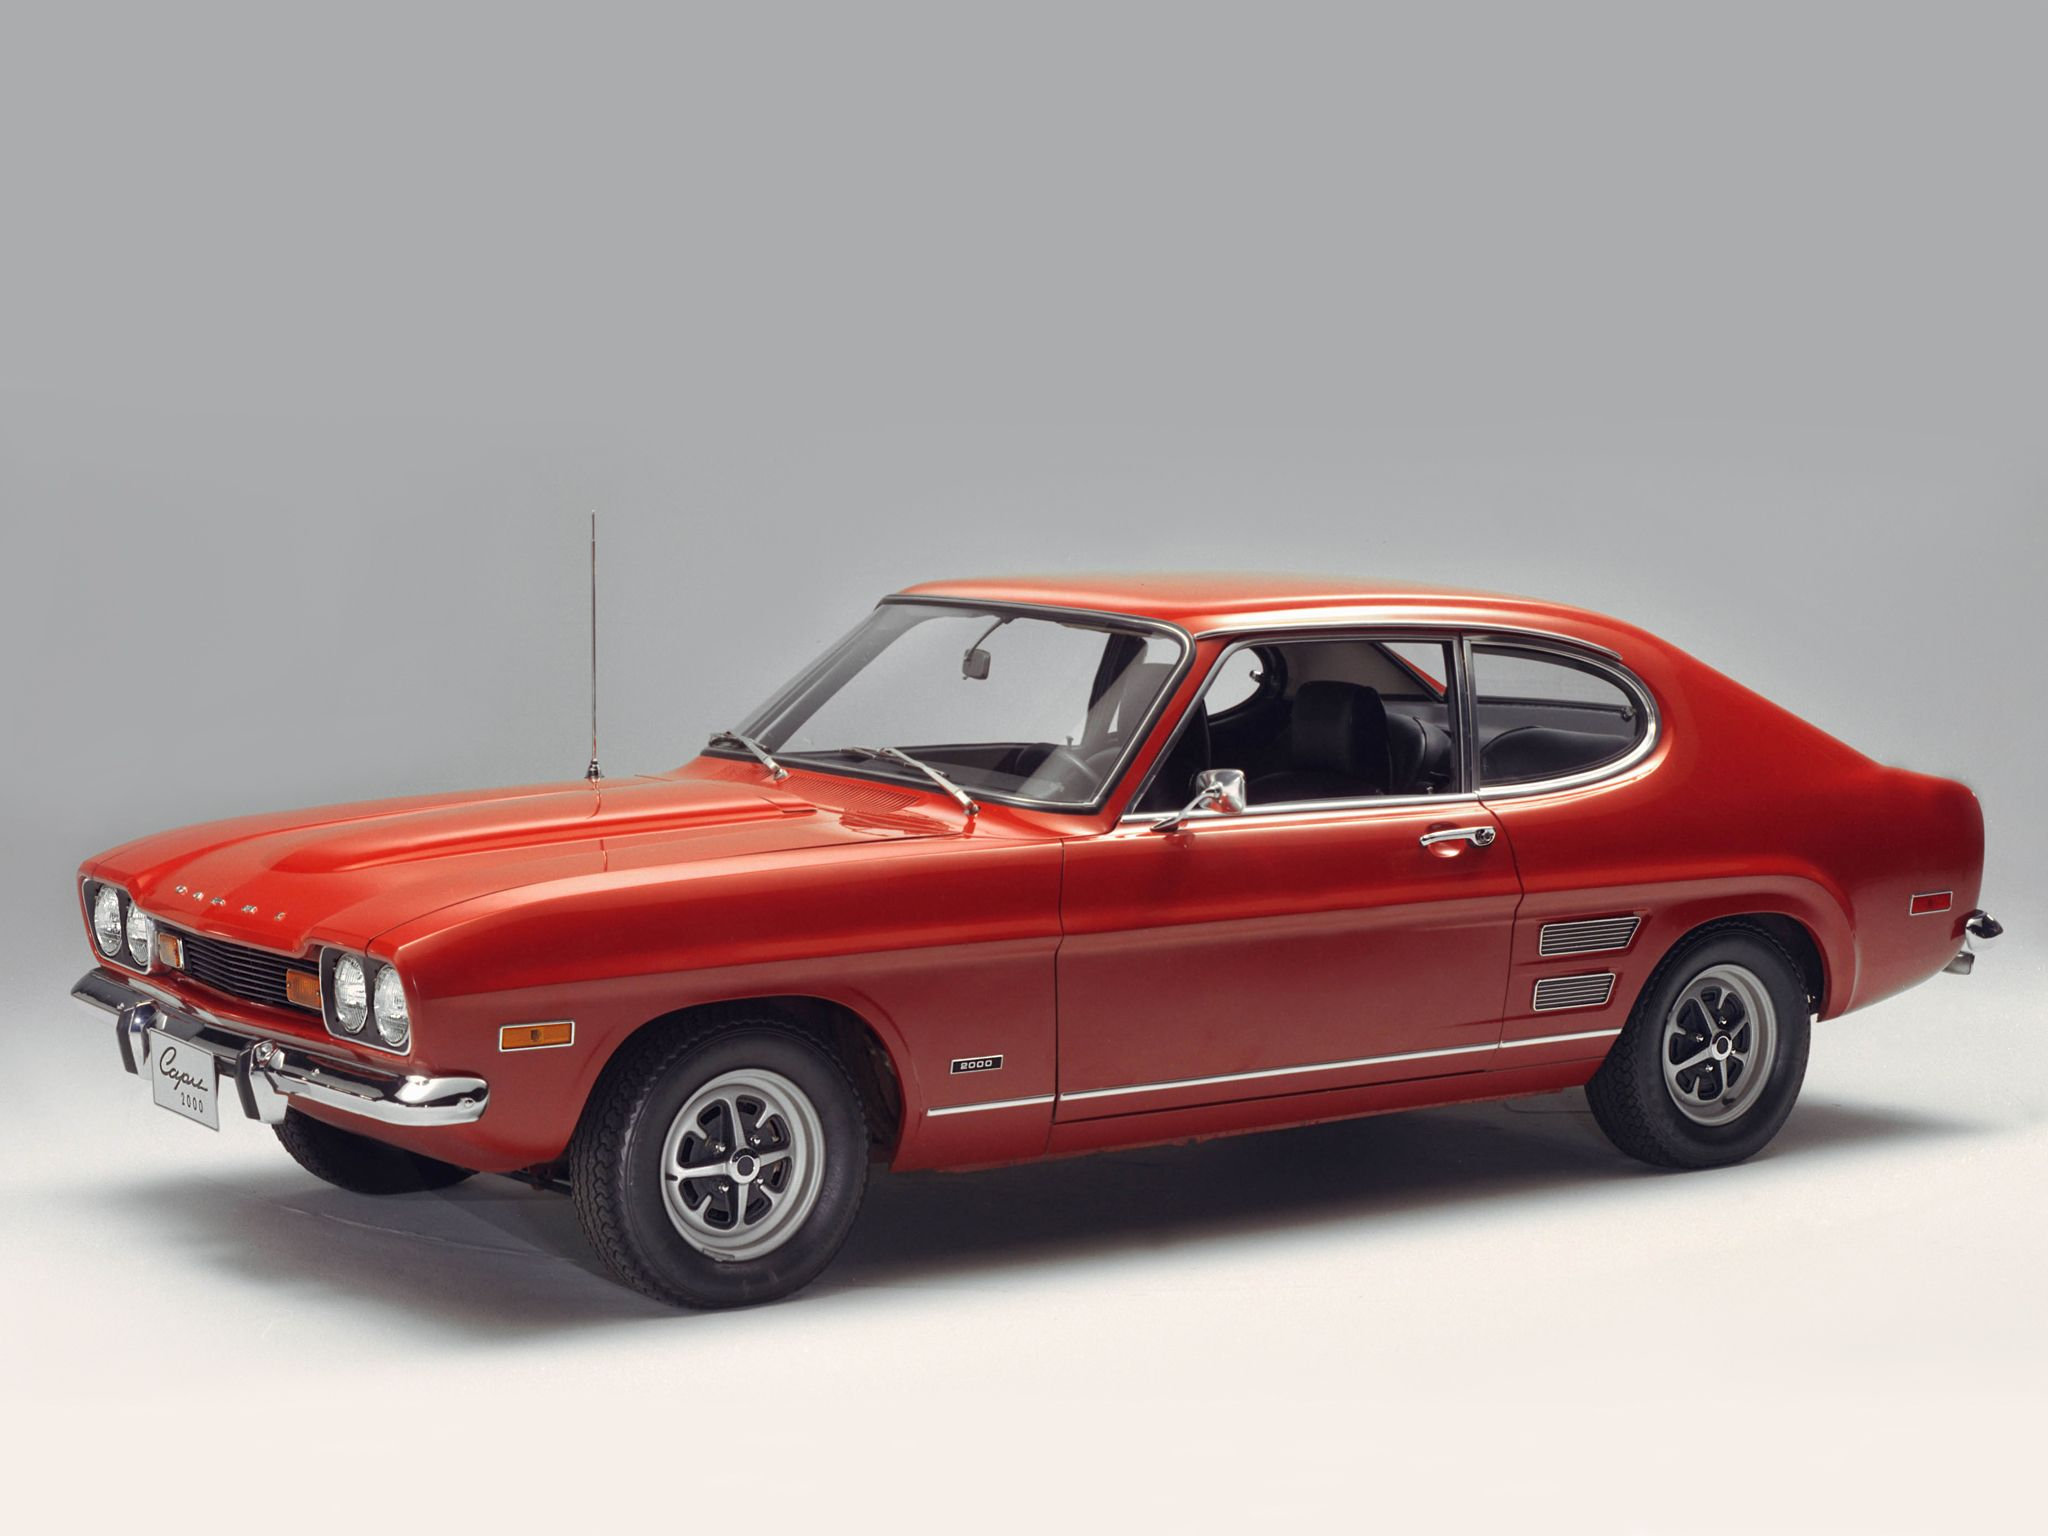 Ford Capri They Were Good Cars Ford Capri Mercury Capri Ford